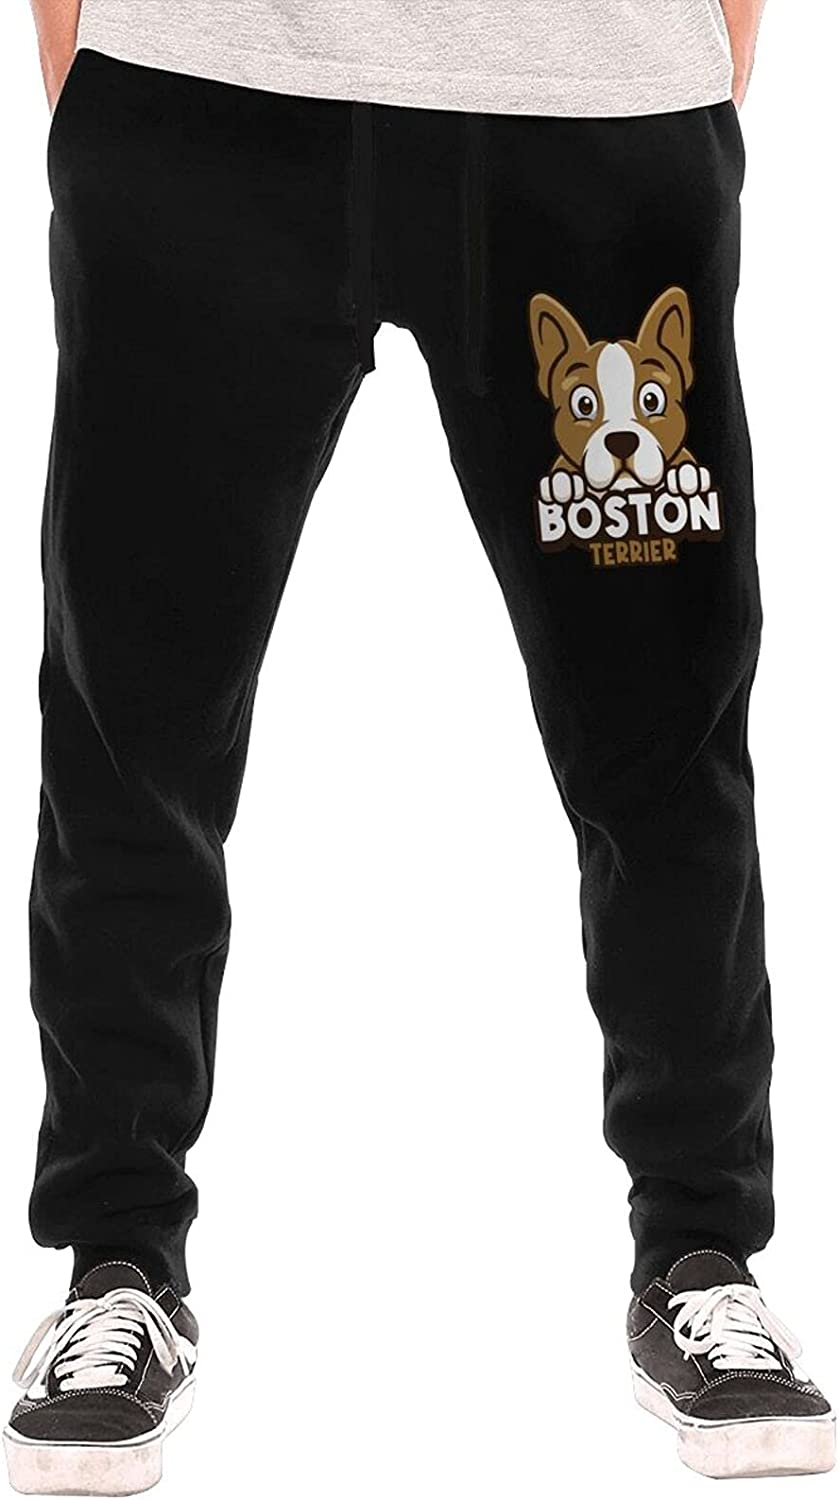 Constantyou Boston 2021 spring and summer new Mall Terrier Sweatpants Gym Men Swe for